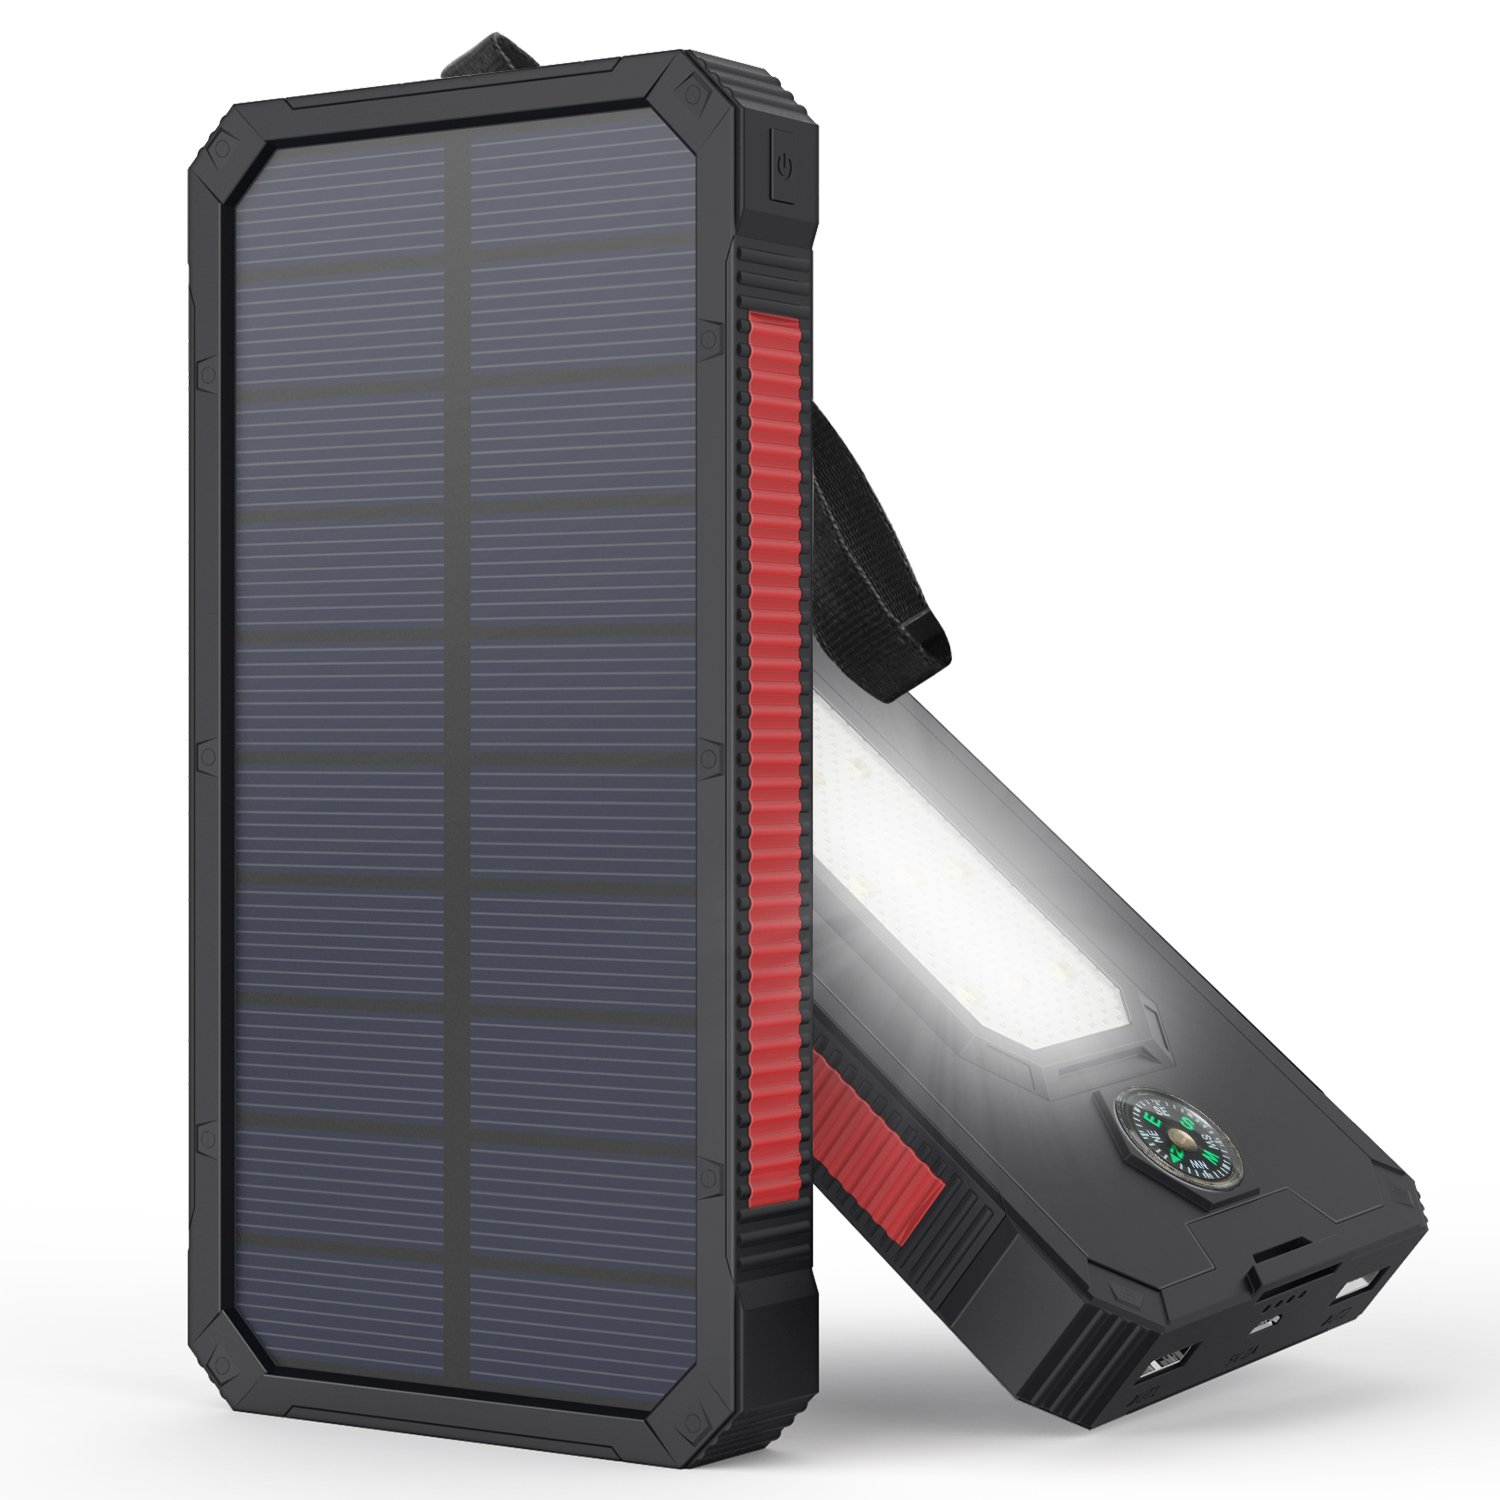 Solar Charger, MeGa 10000mAh Portable Solar Power Bank Waterproof Dual USB Battery with Led Flashlight for iPhone, Samsung, Android phone, GoPro Camera, GPS